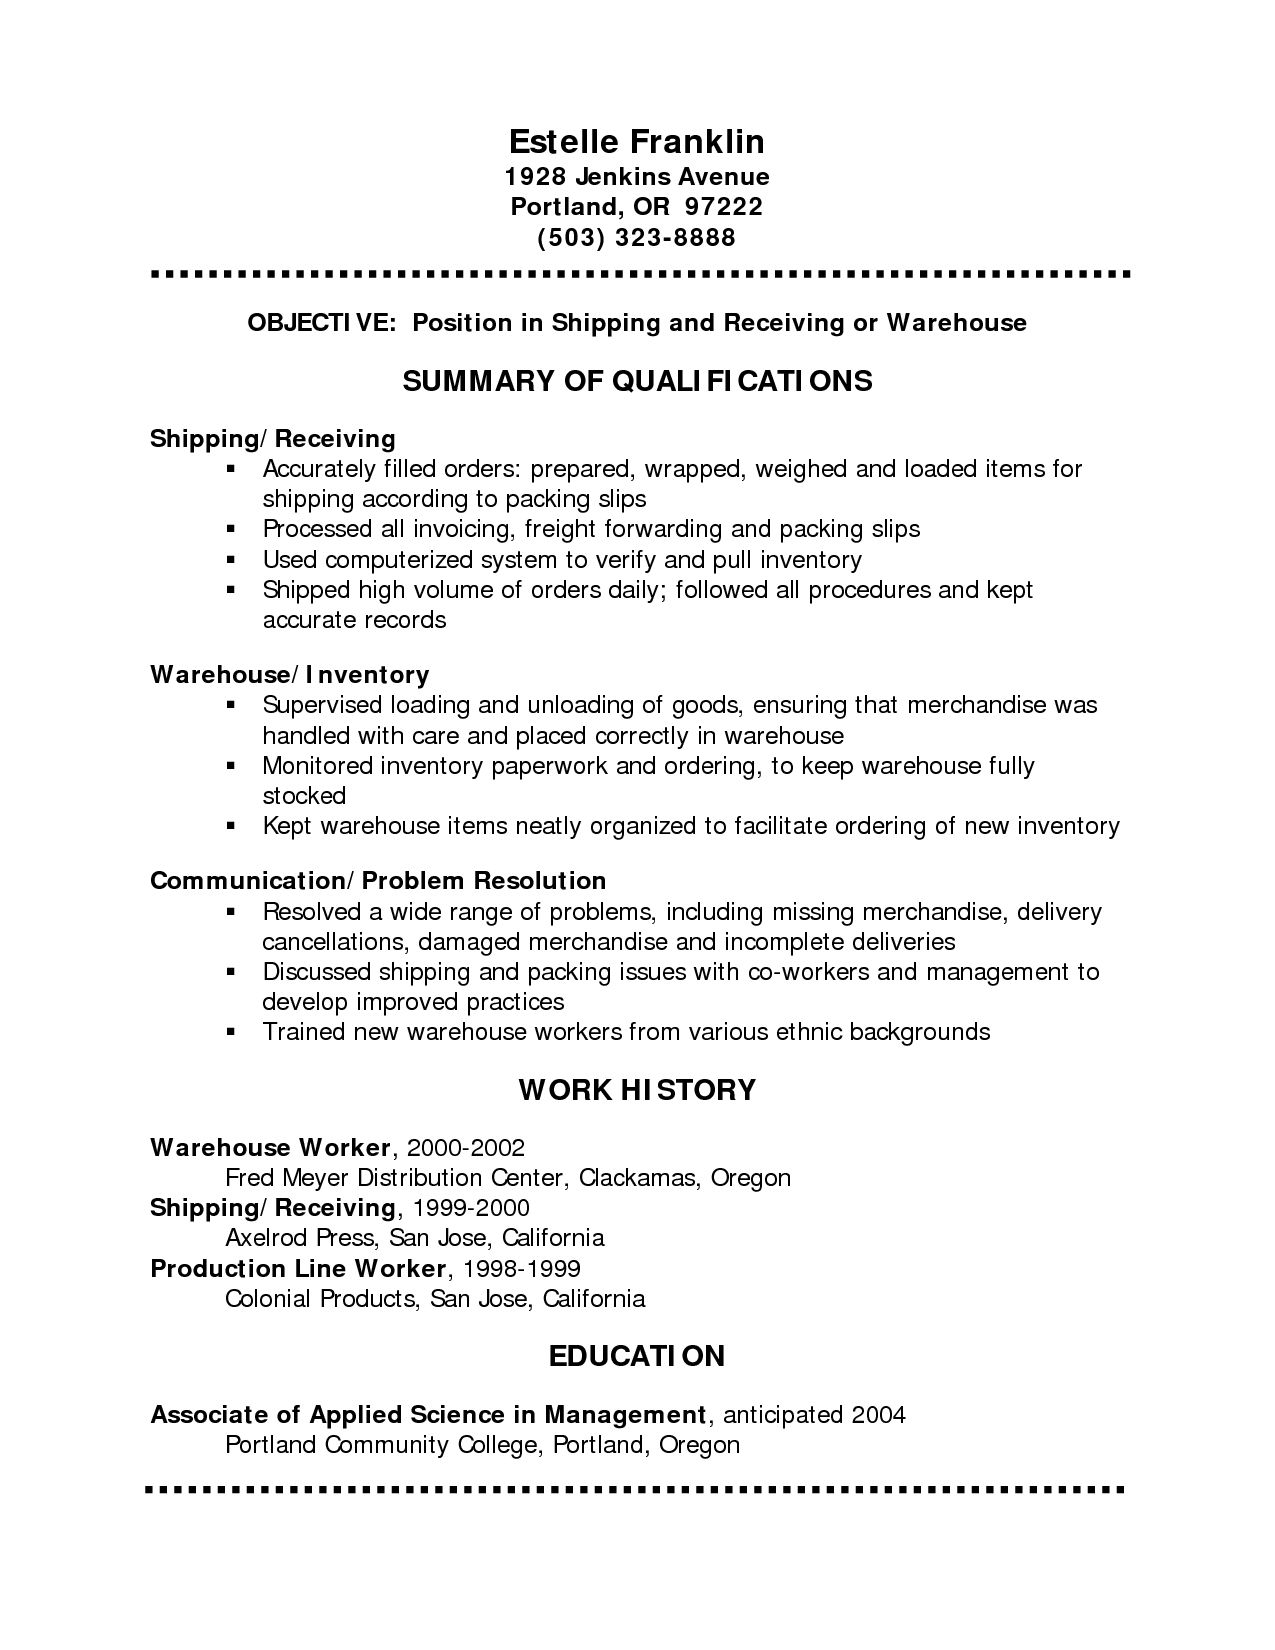 Typical Resume Format Apa Resume Sample Computer Engineer Cover Letter Costume